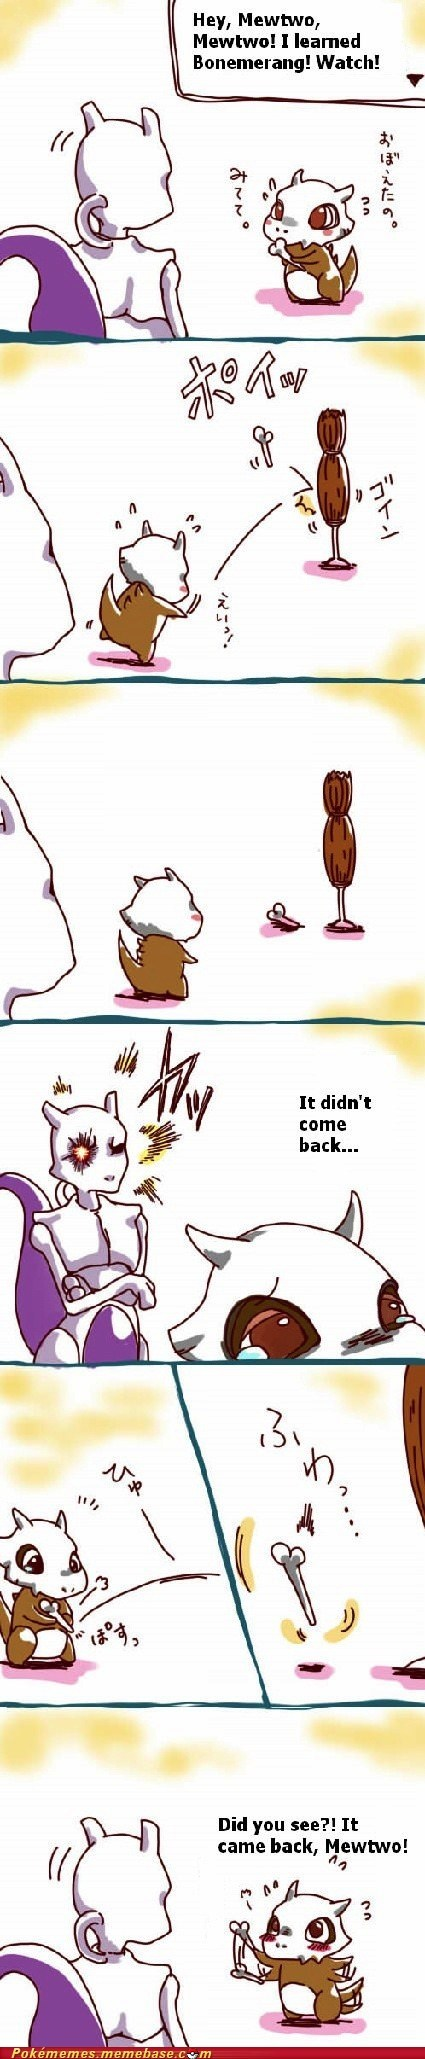 best of week bonemerang comic cubone cute mewtwo Pokémemes - 6370862080